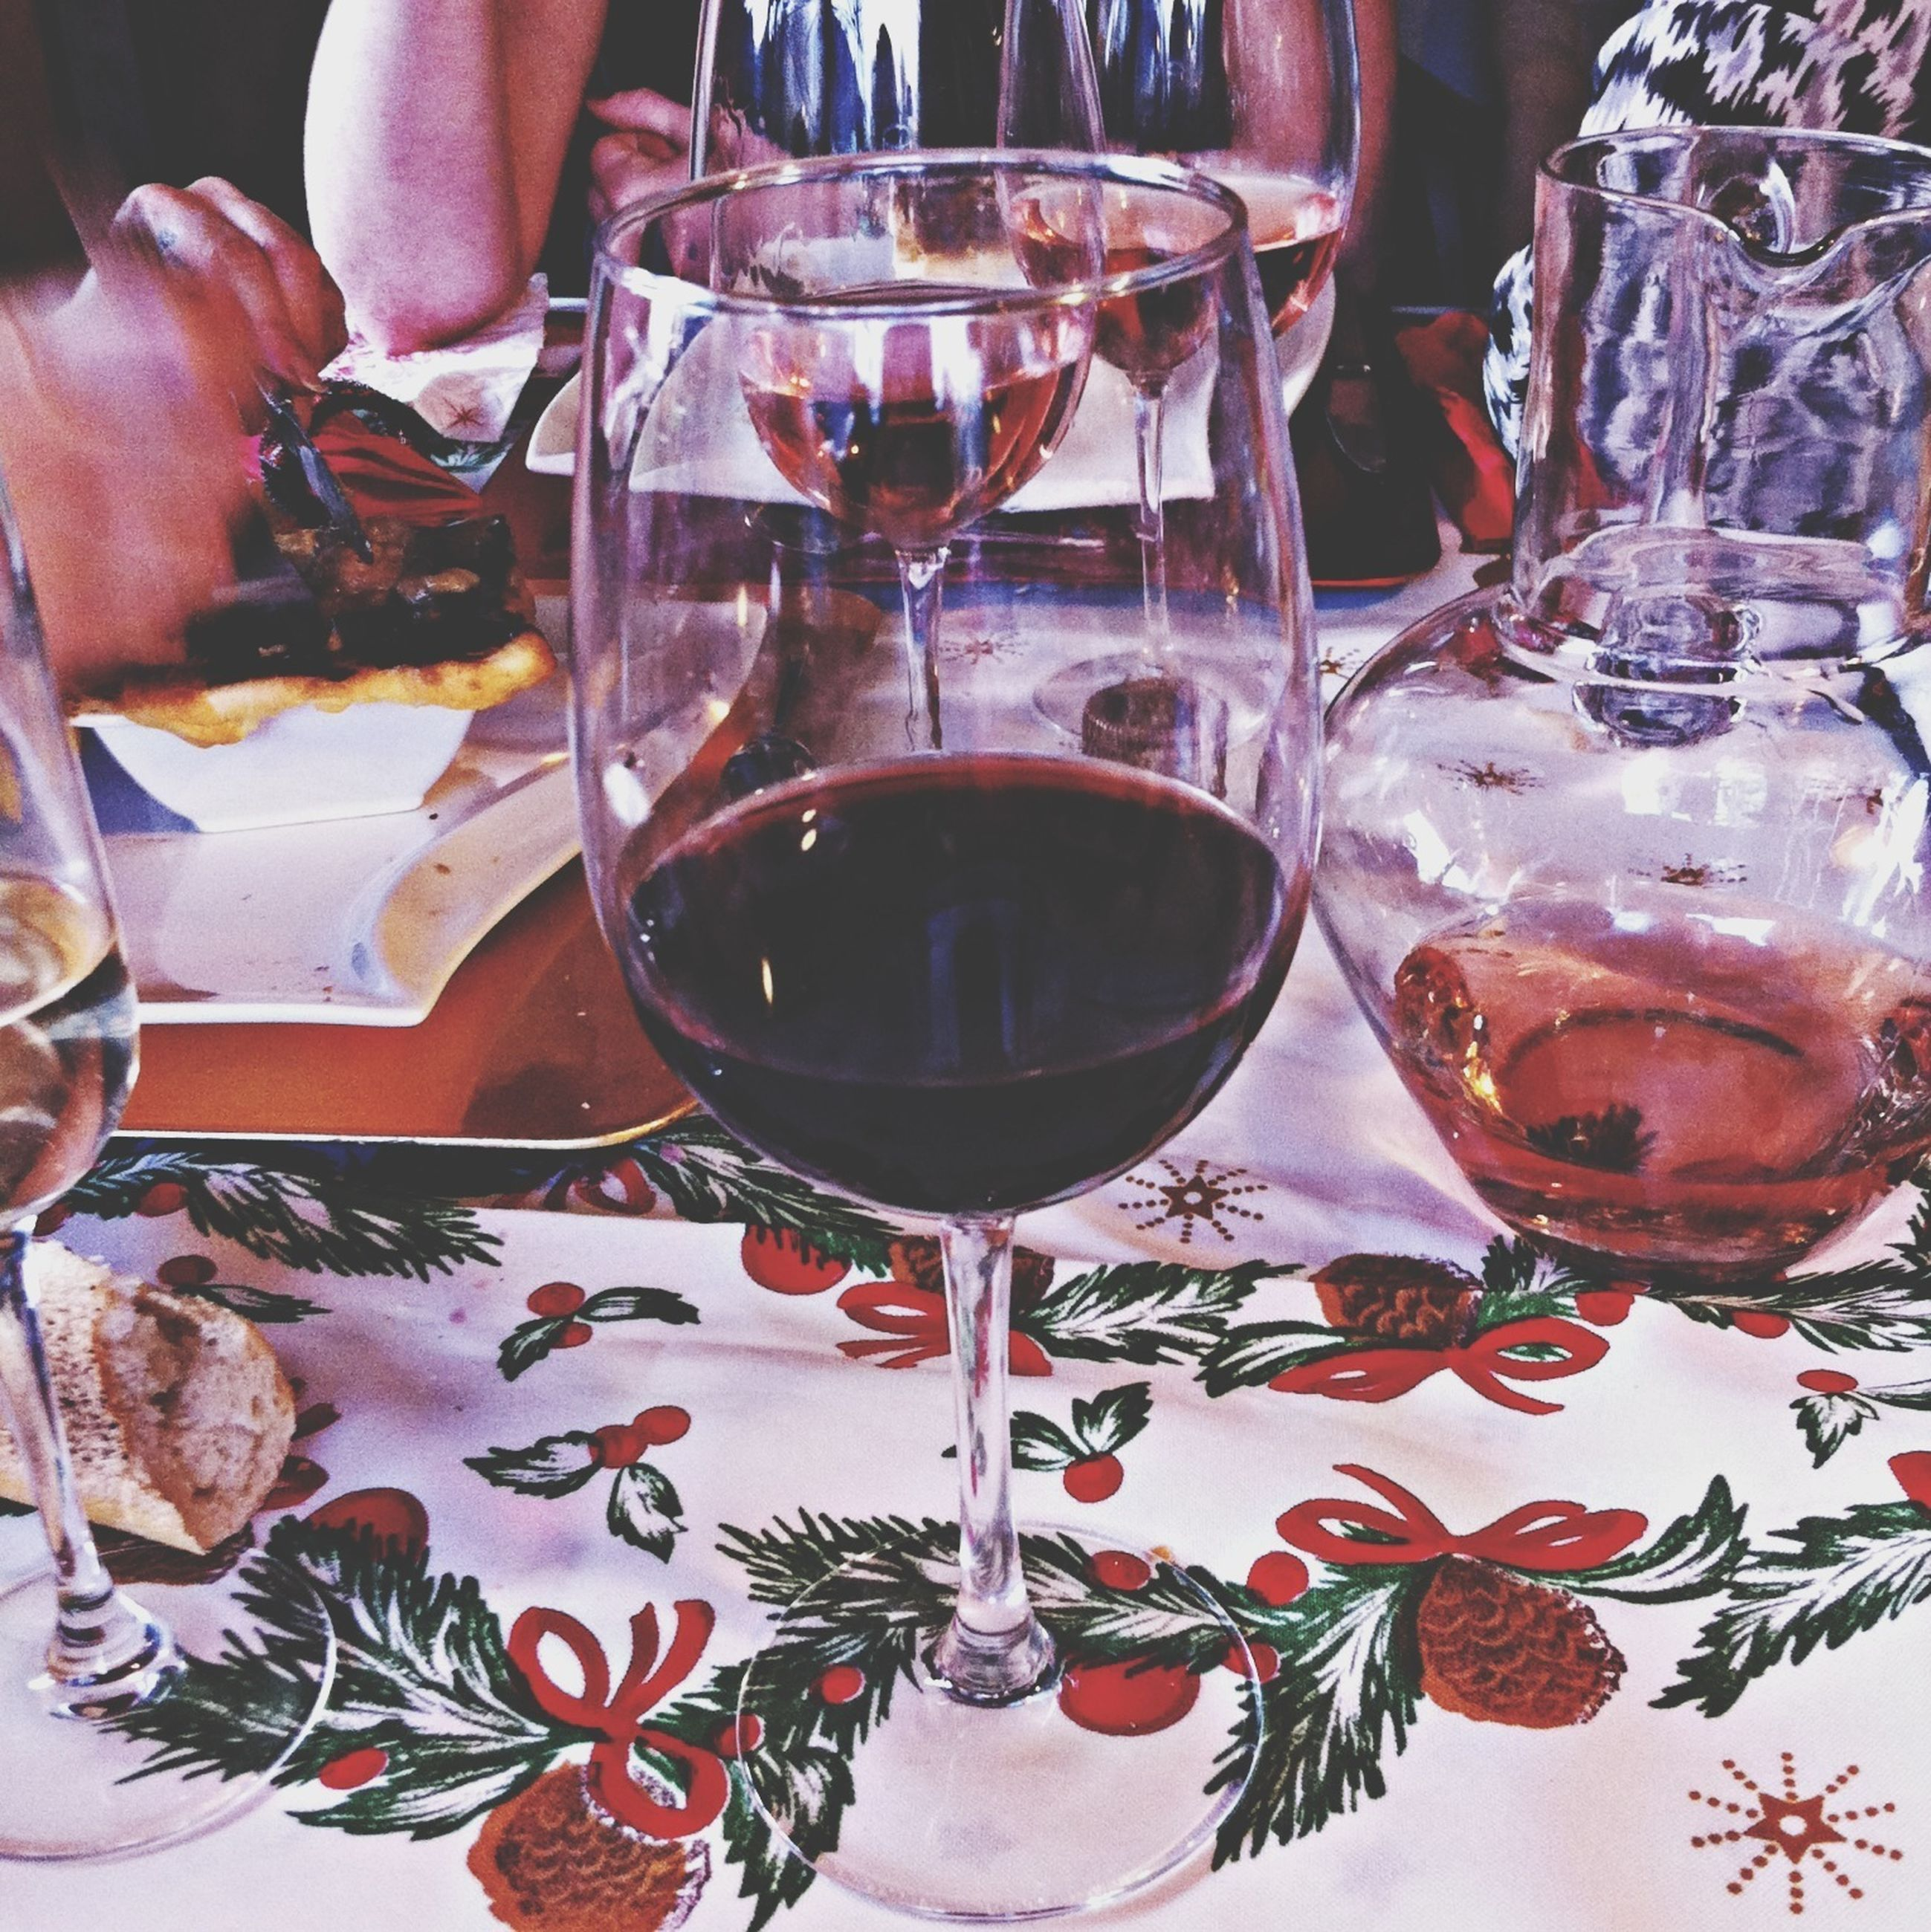 indoors, food and drink, table, drink, refreshment, drinking glass, freshness, wineglass, still life, glass - material, restaurant, close-up, wine, food, alcohol, home interior, transparent, plate